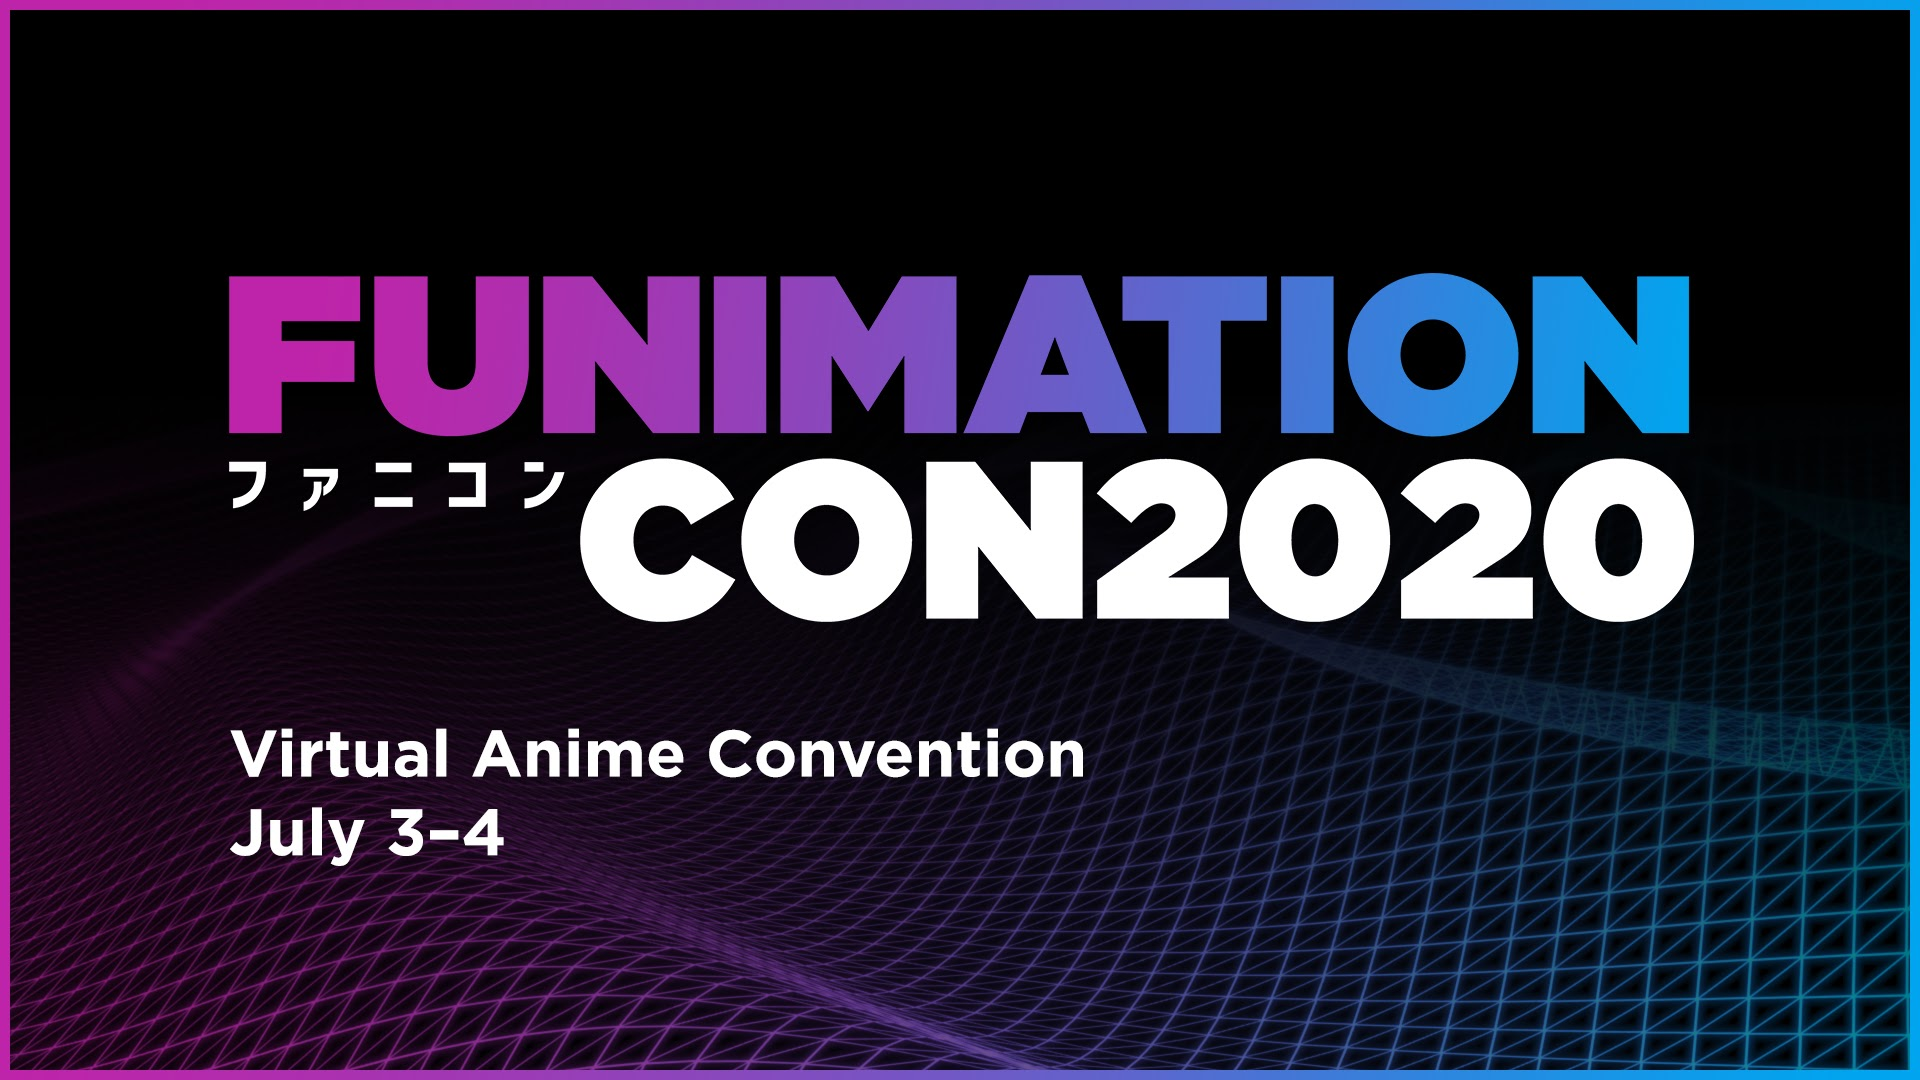 Culver City, CA (May 4, 2020) Funimation, the leading global anime content provider, today unveiled FunimationCon, its first-ever virtual con on July 3-4 celebrating the anime community. The free, two-day virtual festival brings the spirit of the con experience into the homes of anime fans with panels, cosplay meetups, forums, and more. For information on FunimationCon and to receive updates, visit  FunimationCon.com. Funimation will share additional details on the event in the coming weeks.